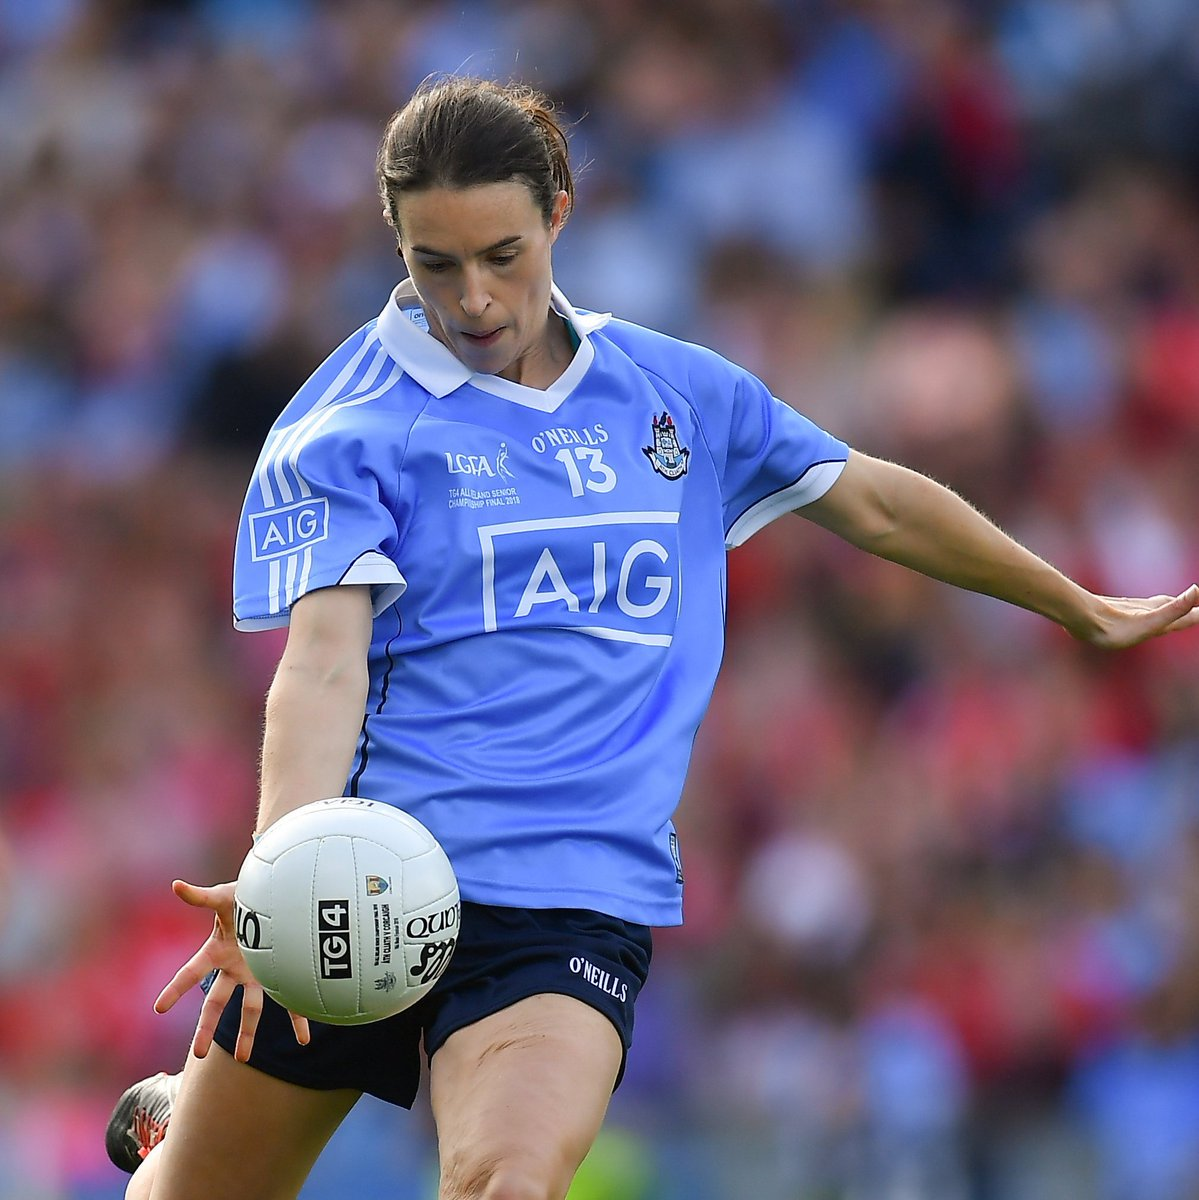 test Twitter Media - Shortlisted for @RTEsport Sportsperson of the Year, we have @BrianFenton08 & Sinéad Aherne of @dublinladiesg! 👏 #UpTheDubs https://t.co/VcefQghK5F